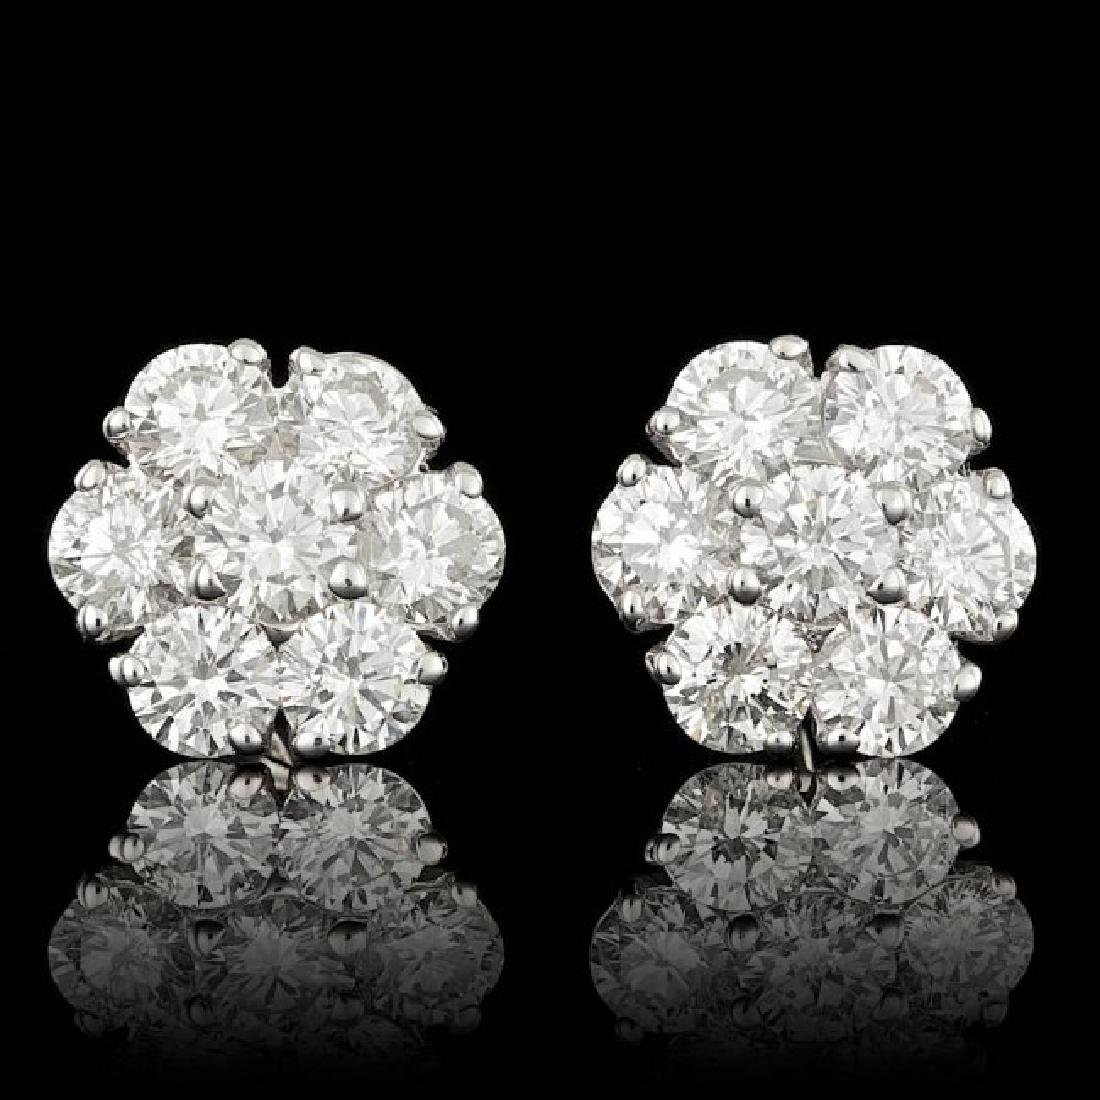 14k White Gold 2.25ct Diamond Earrings